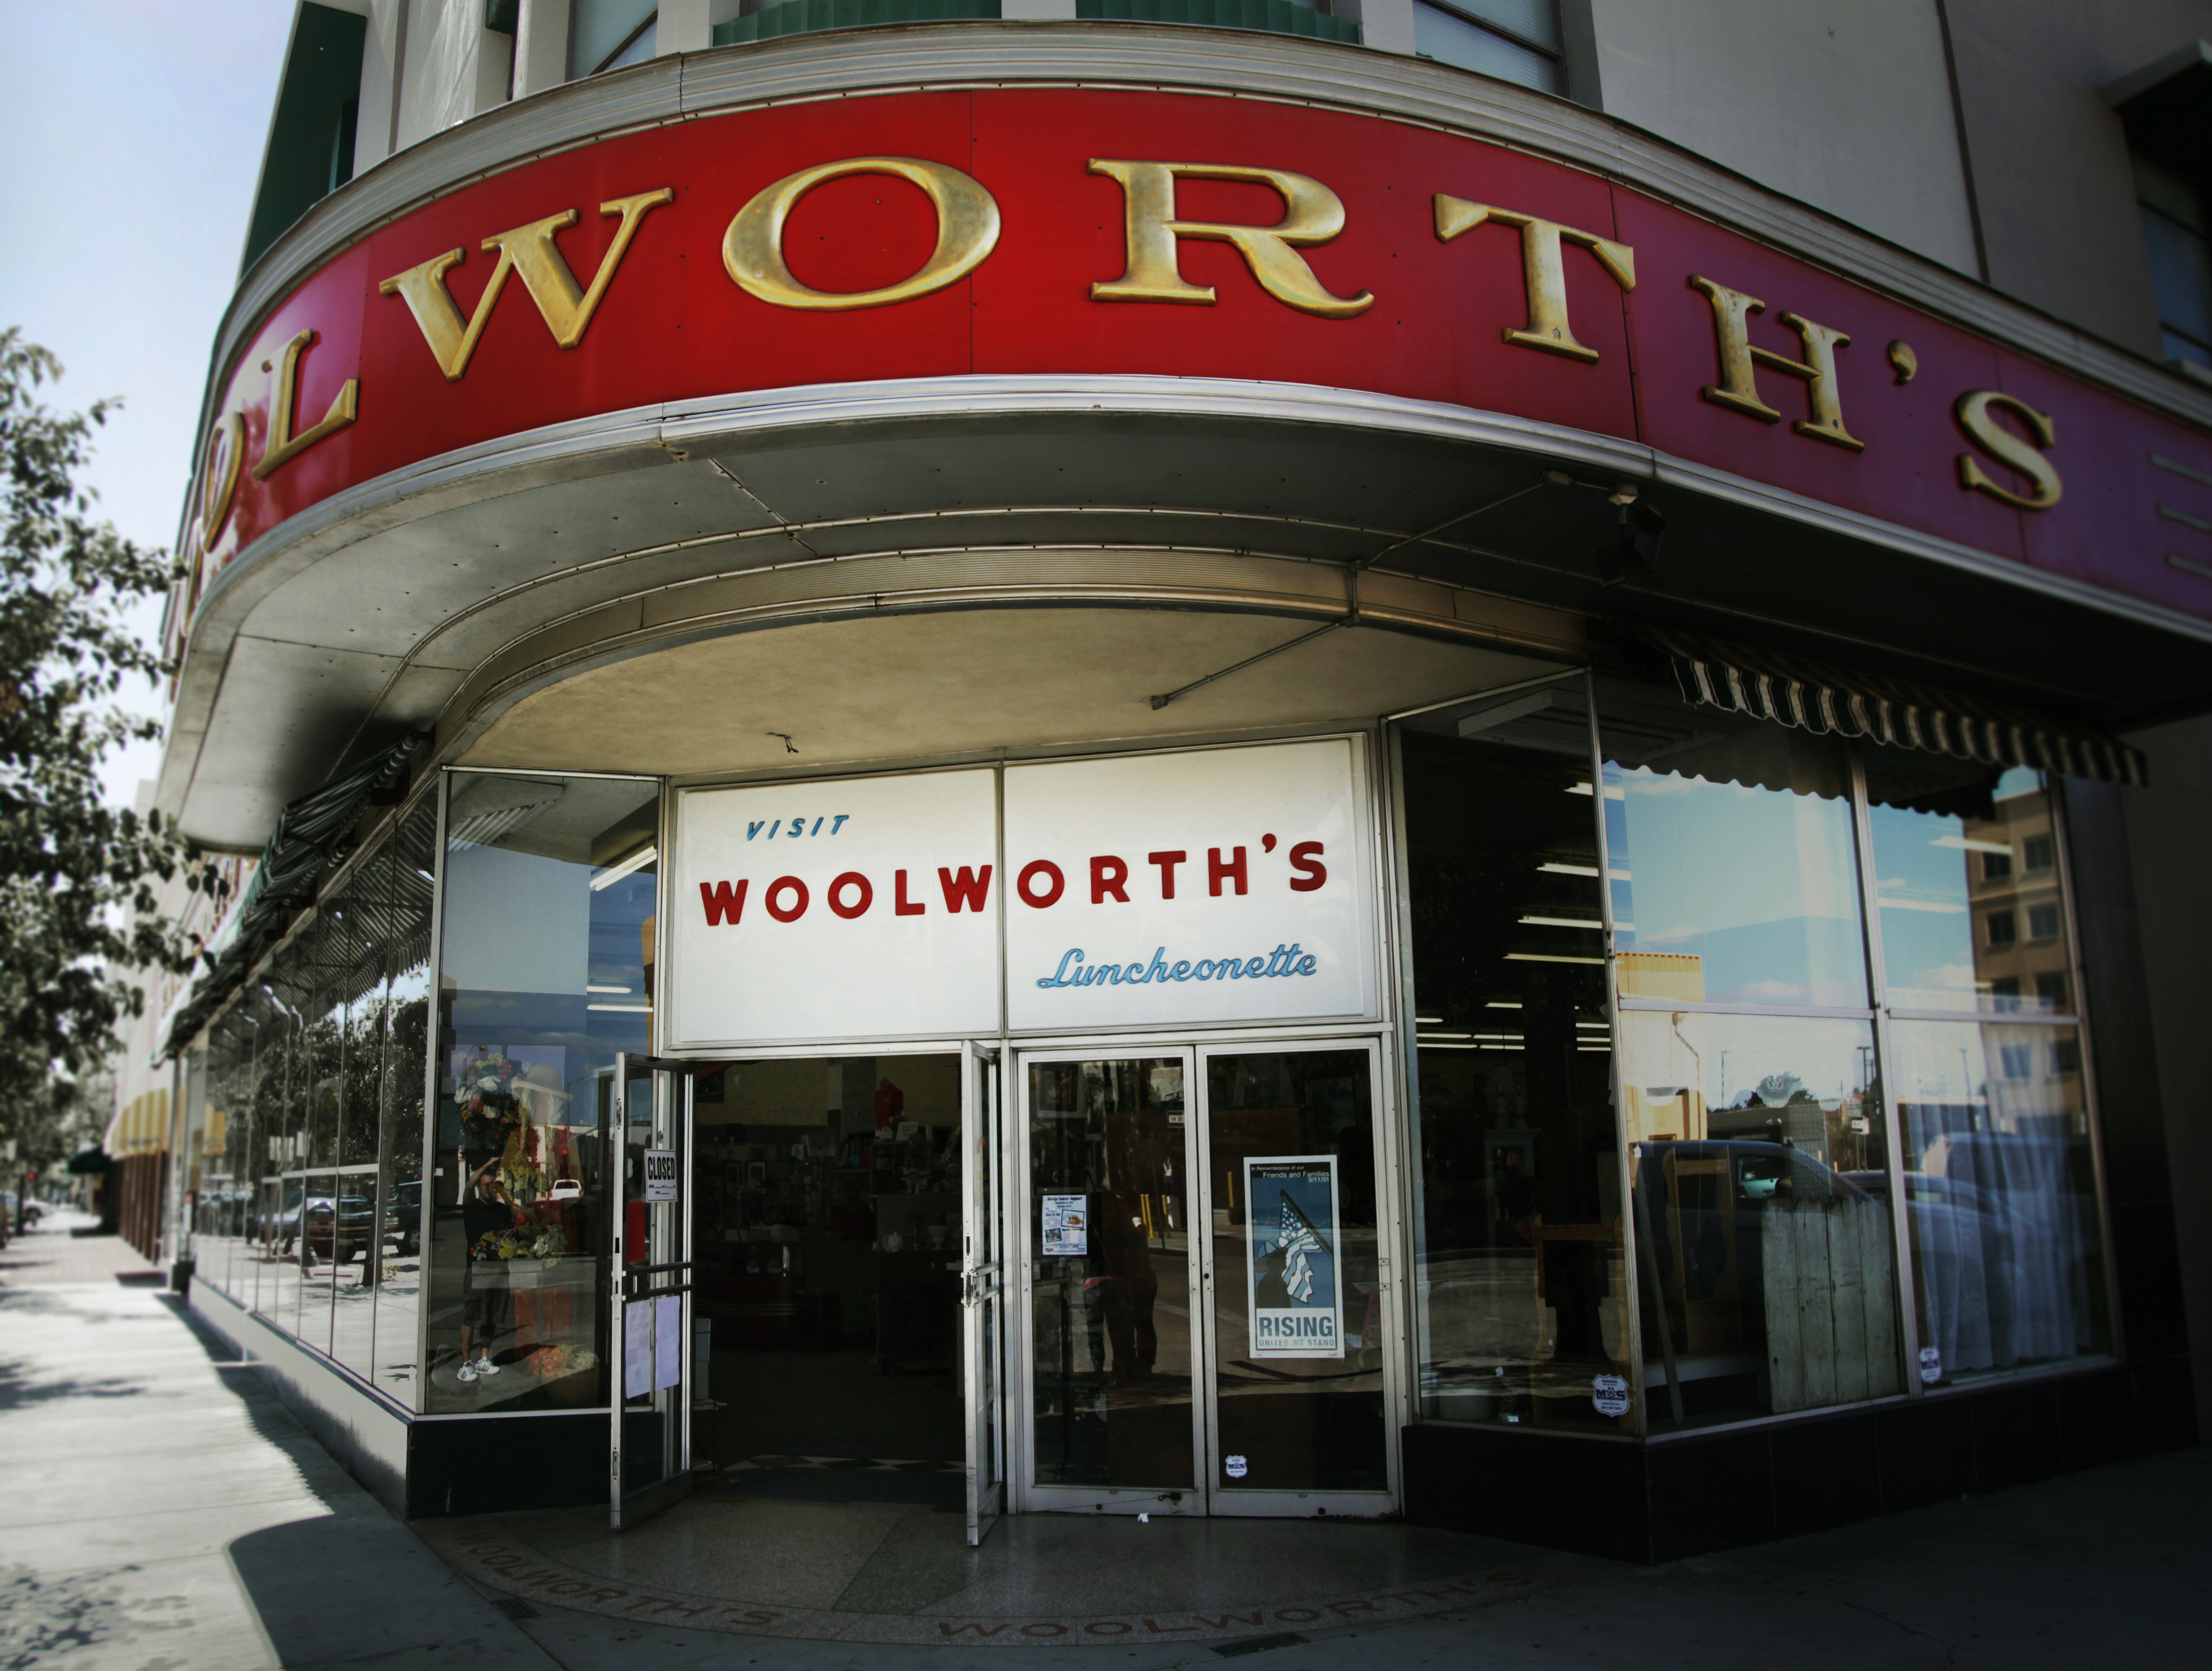 Woolworths Luncheonette